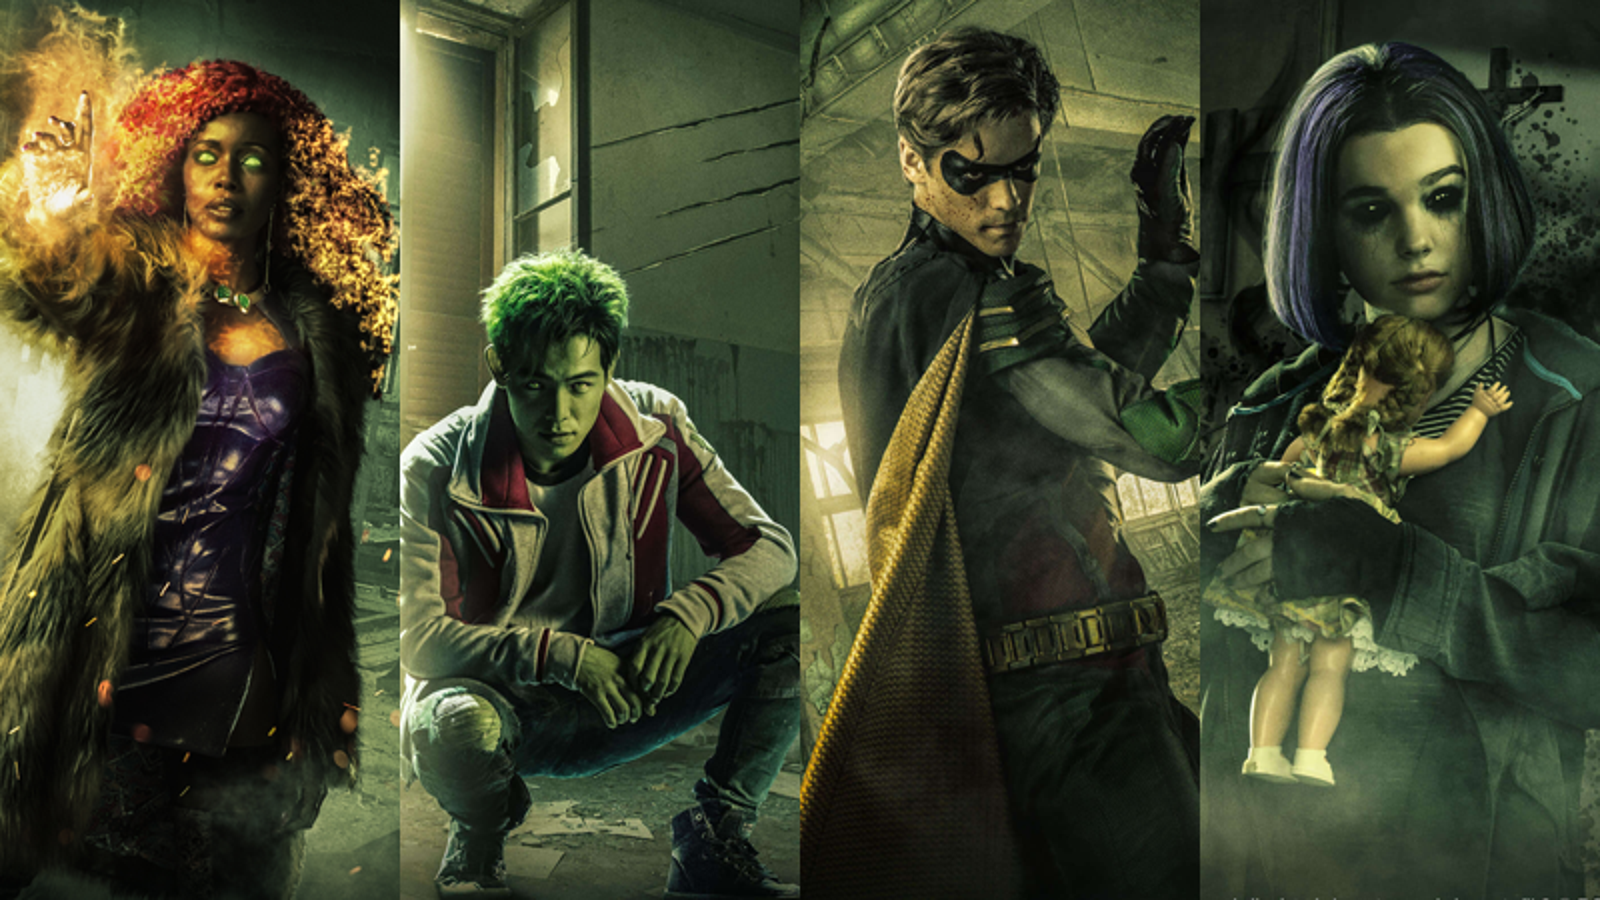 Titans Movie 2019 Poster: DC Universe Streaming Starts September 15, Titans October 12